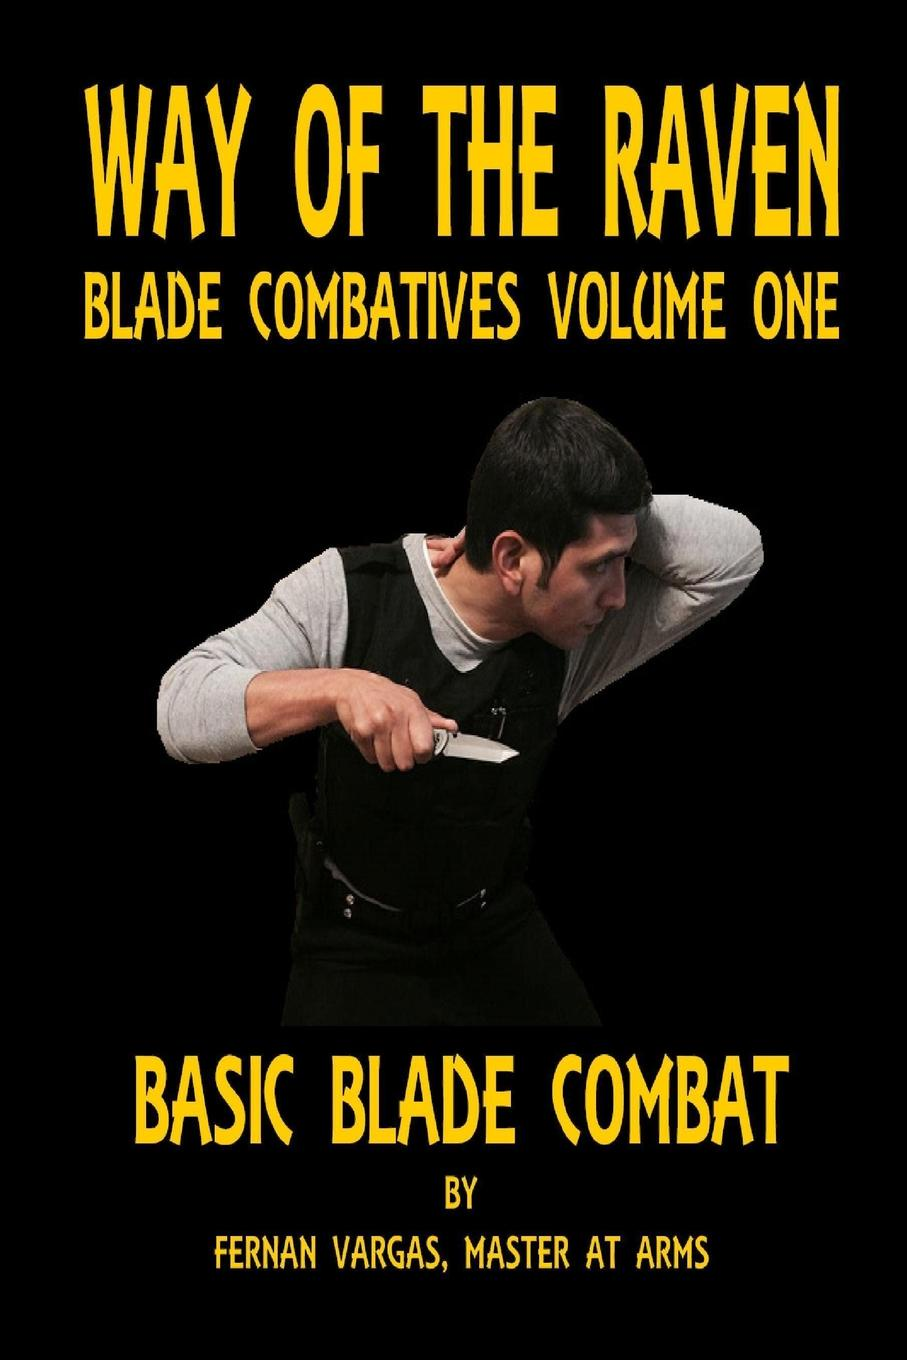 Fernan Vargas Way of the Raven Blade Combatives Volume One. Basic Blade Combatives fernan vargas joseph truncale surviving the active killer